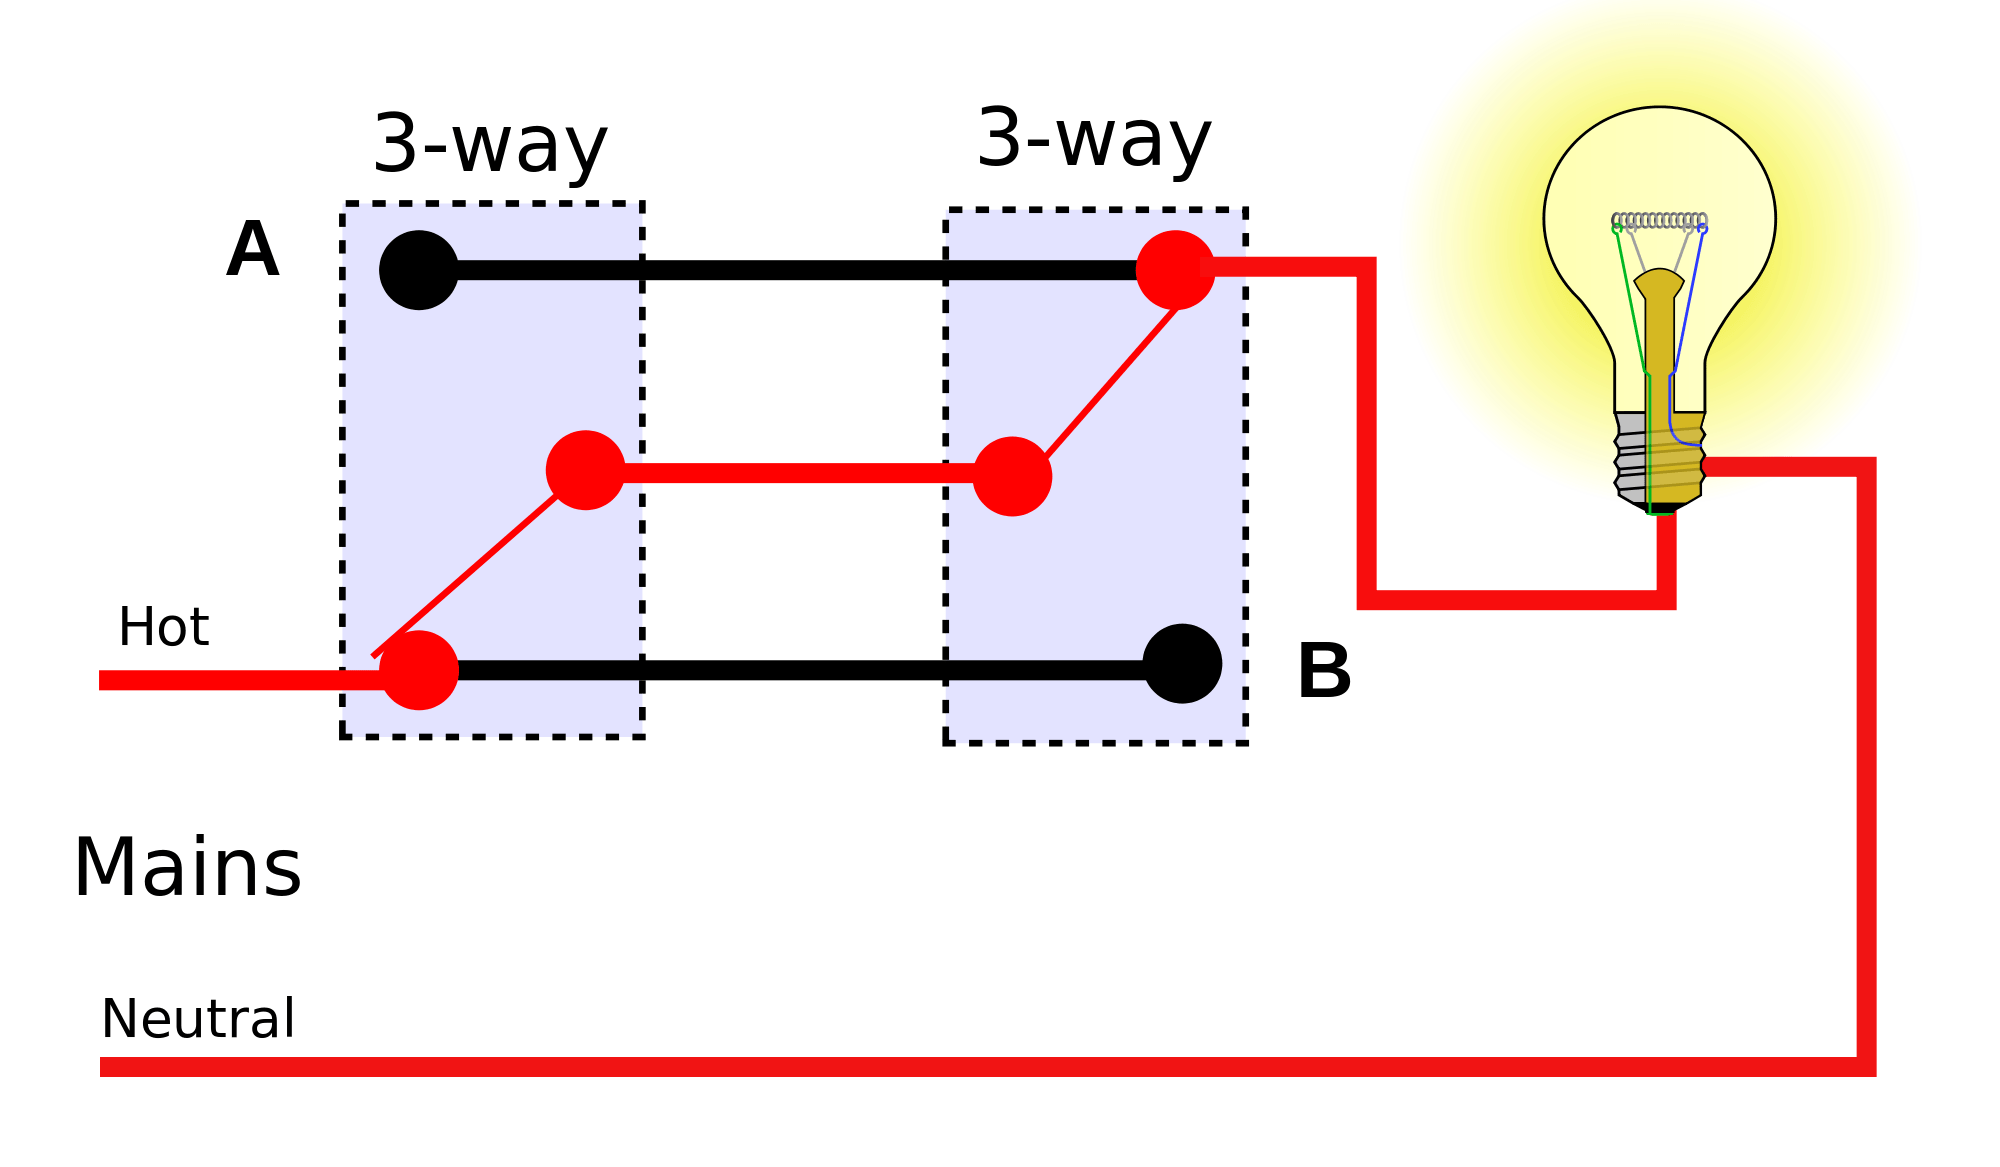 Way Light Switch Wiring Diagram 1 Using Nm Cable Images Frompo